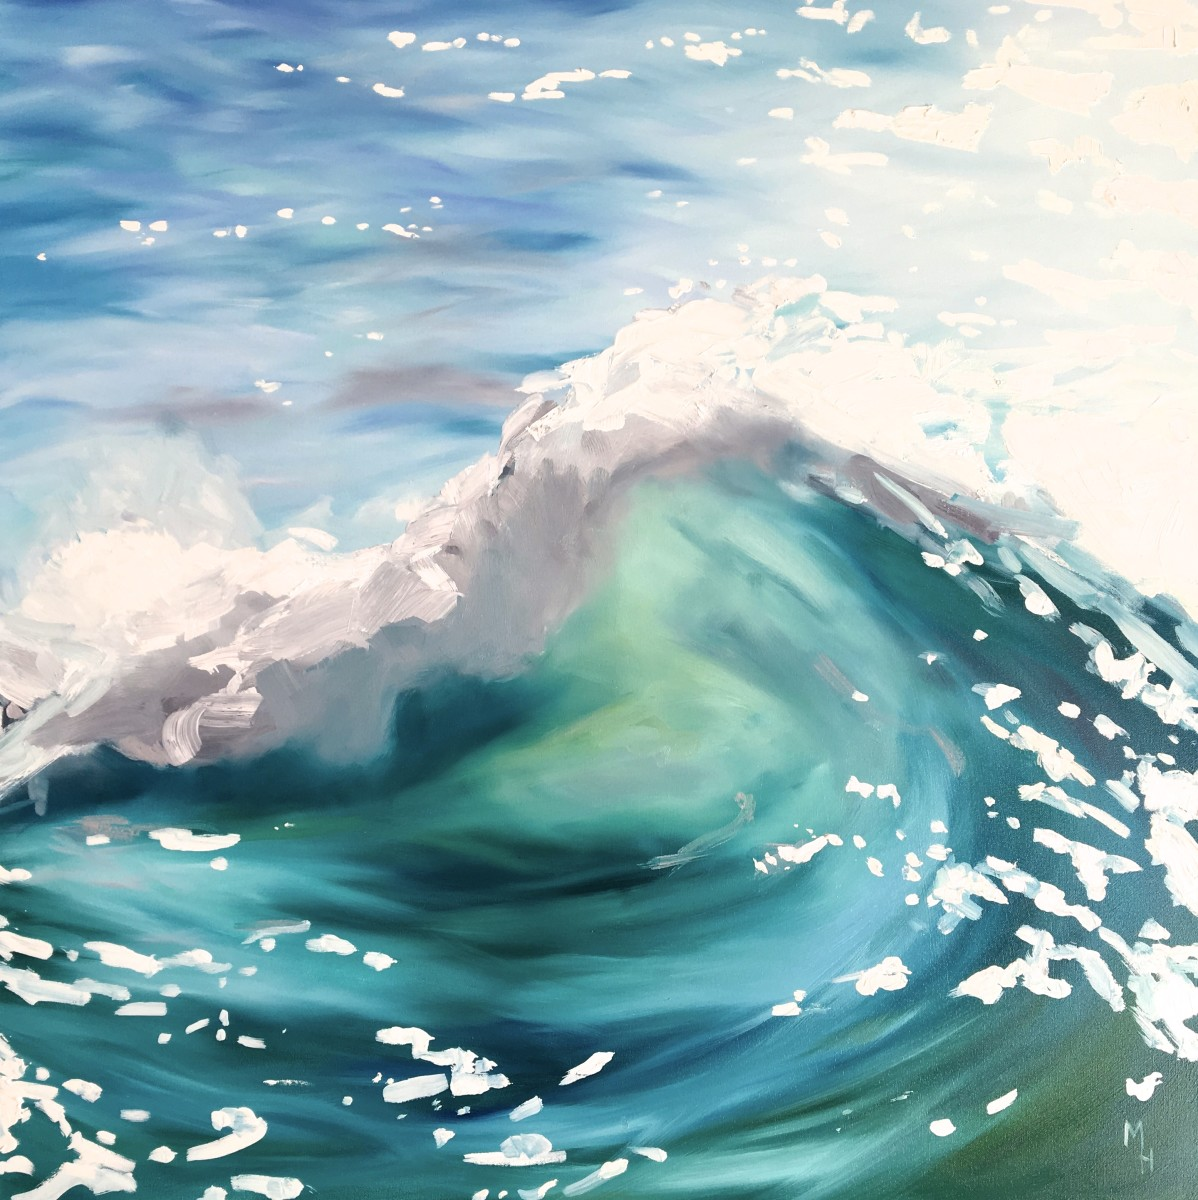 The wave 2 by Meredith Howse